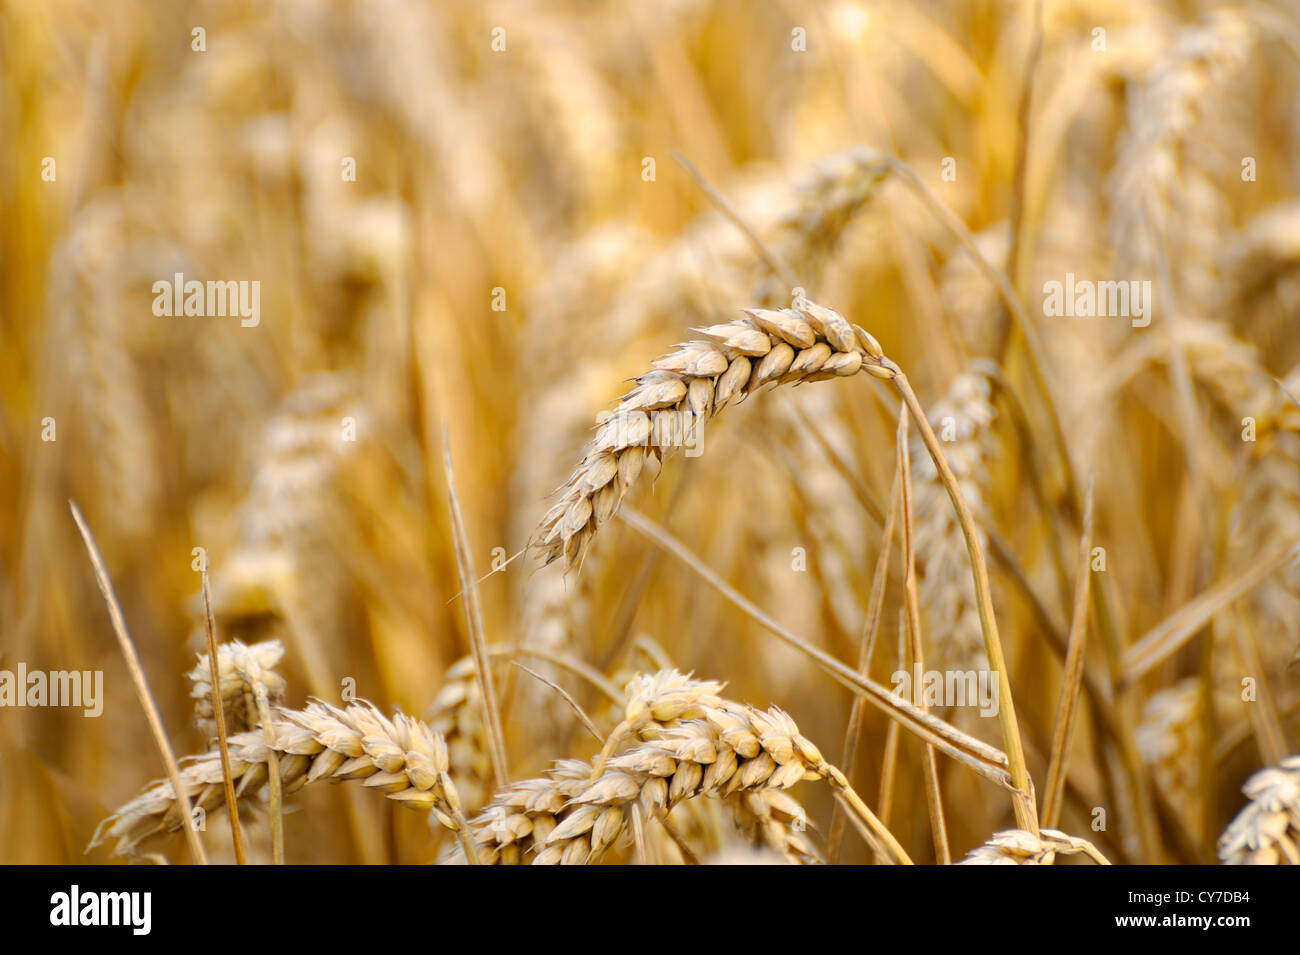 WHEAT GROWING IN A FIELD , SINGLE EAR OR STALK OF WHEAT - Stock Image